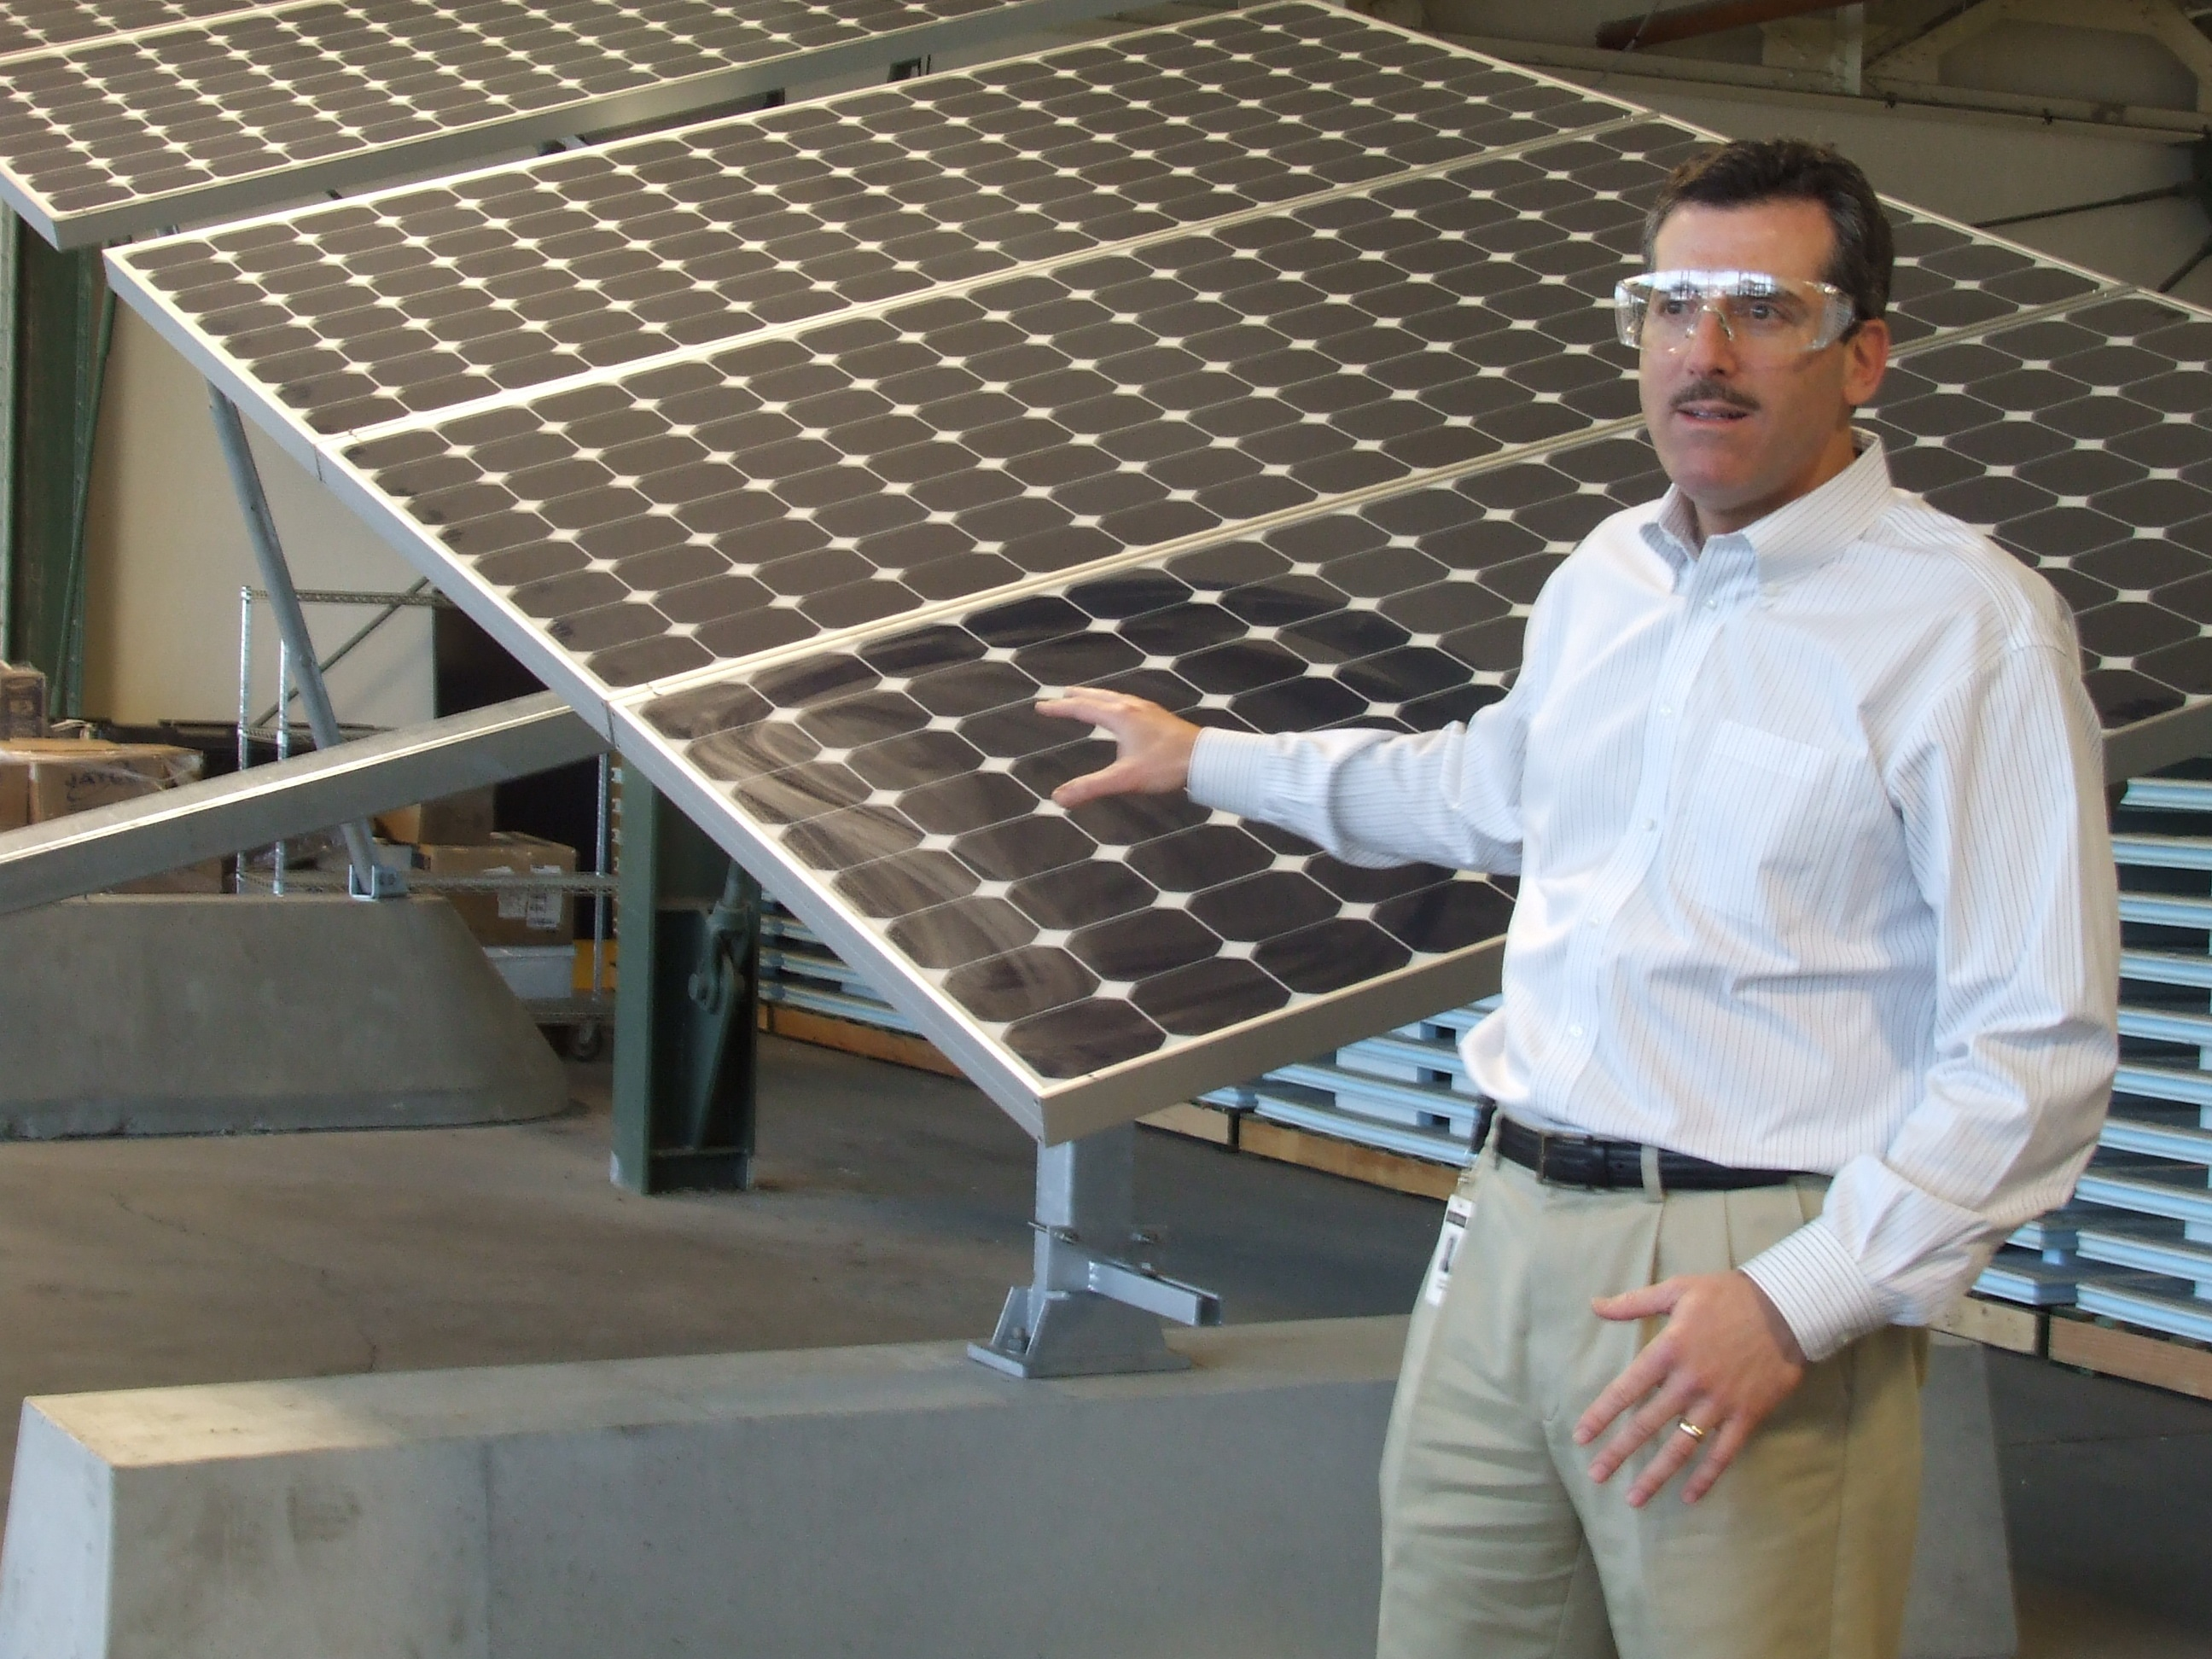 PHOTOS: SunPower Factory Tour, 25 Years to 1 GW